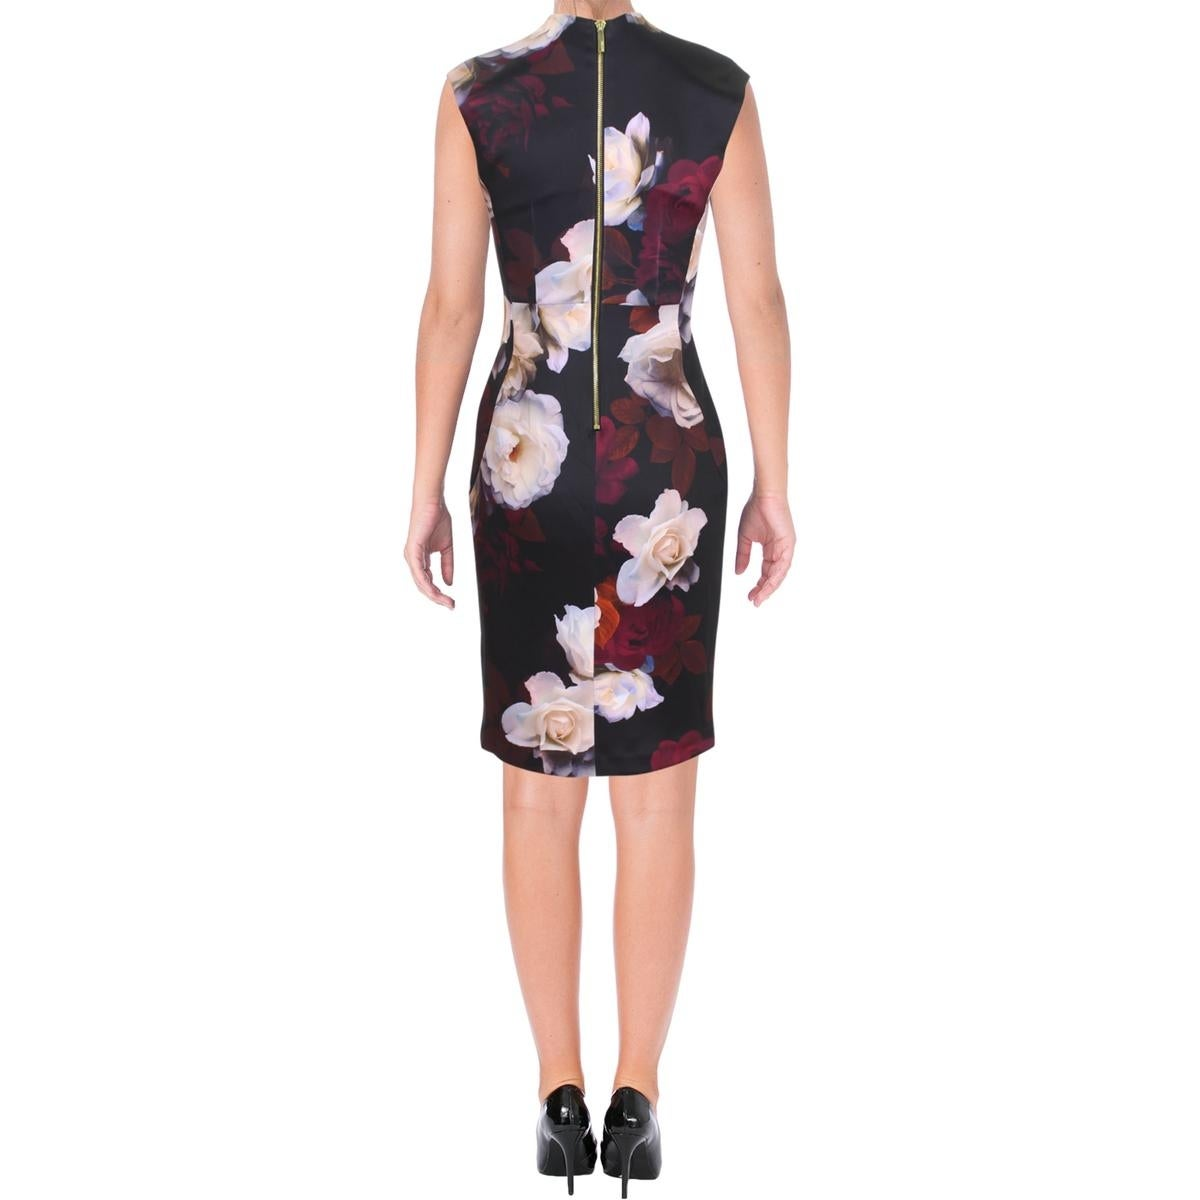 6fa6c42e93a Shop Calvin Klein Womens Cocktail Dress Floral Print Knee-Length - Free  Shipping Today - Overstock - 24219881